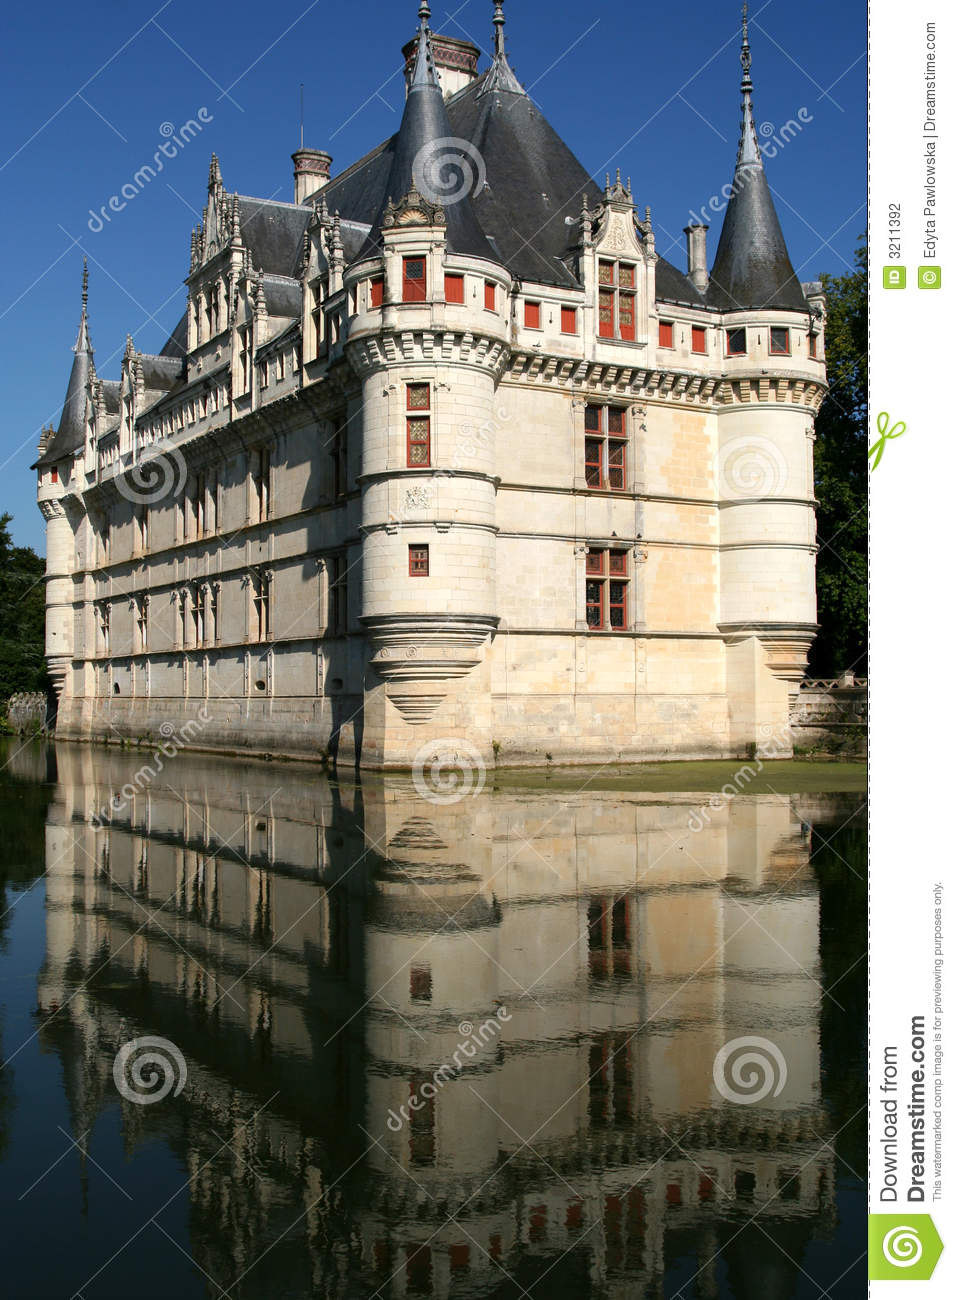 azay le rideau castle france stock photography image. Black Bedroom Furniture Sets. Home Design Ideas